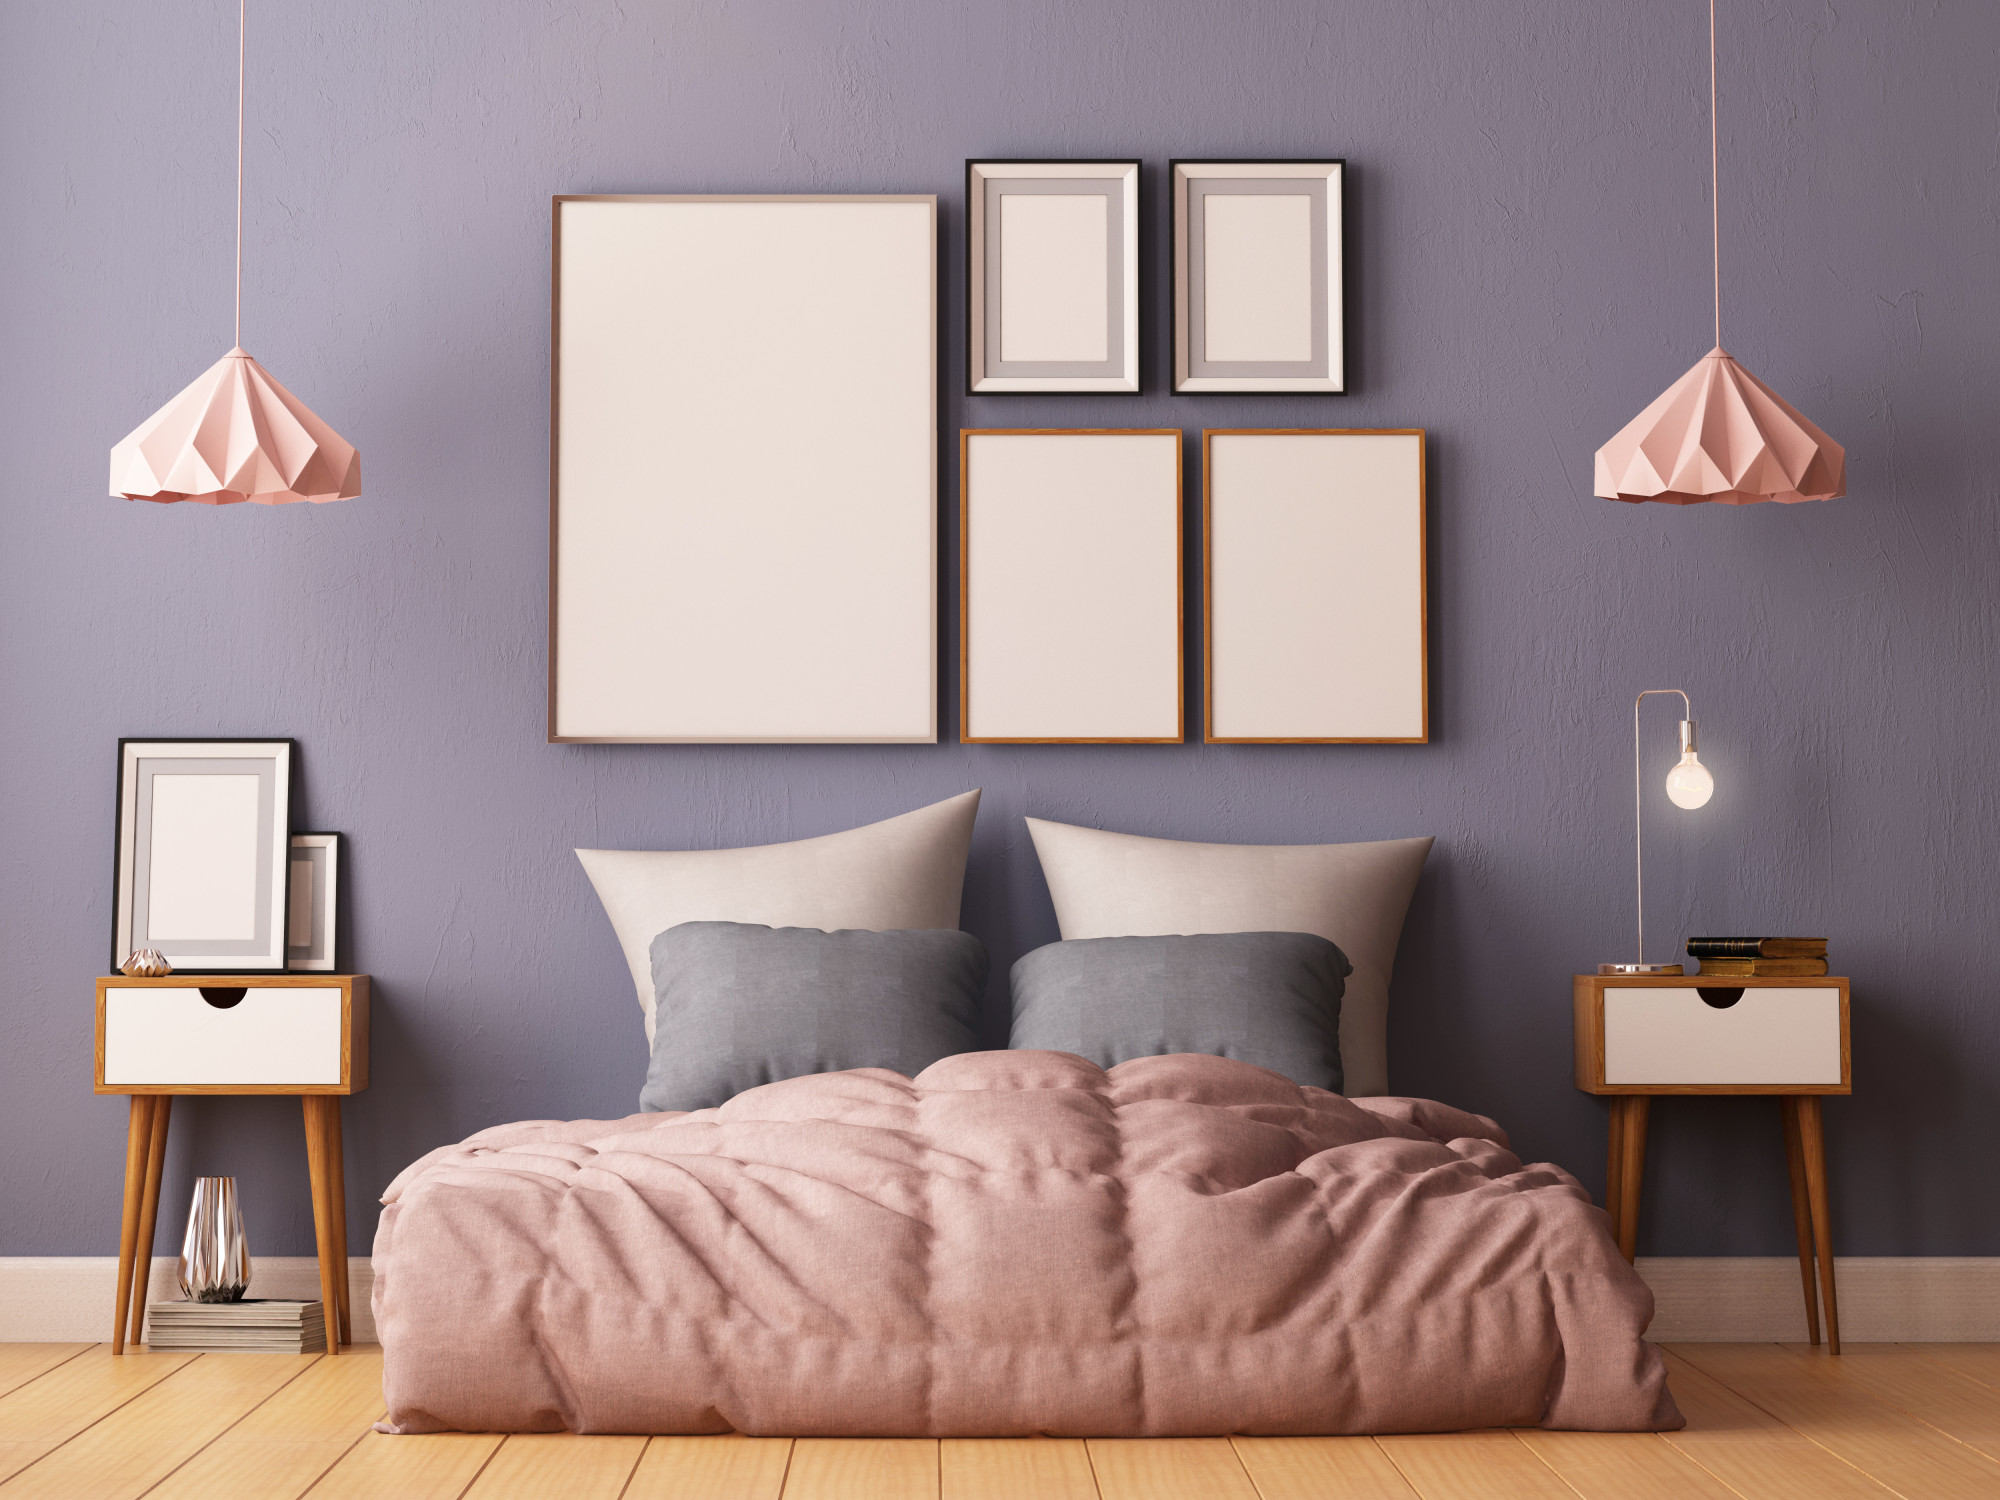 10 Diy Bedroom Ideas To Make Your Space Look Luscious Houseaffection